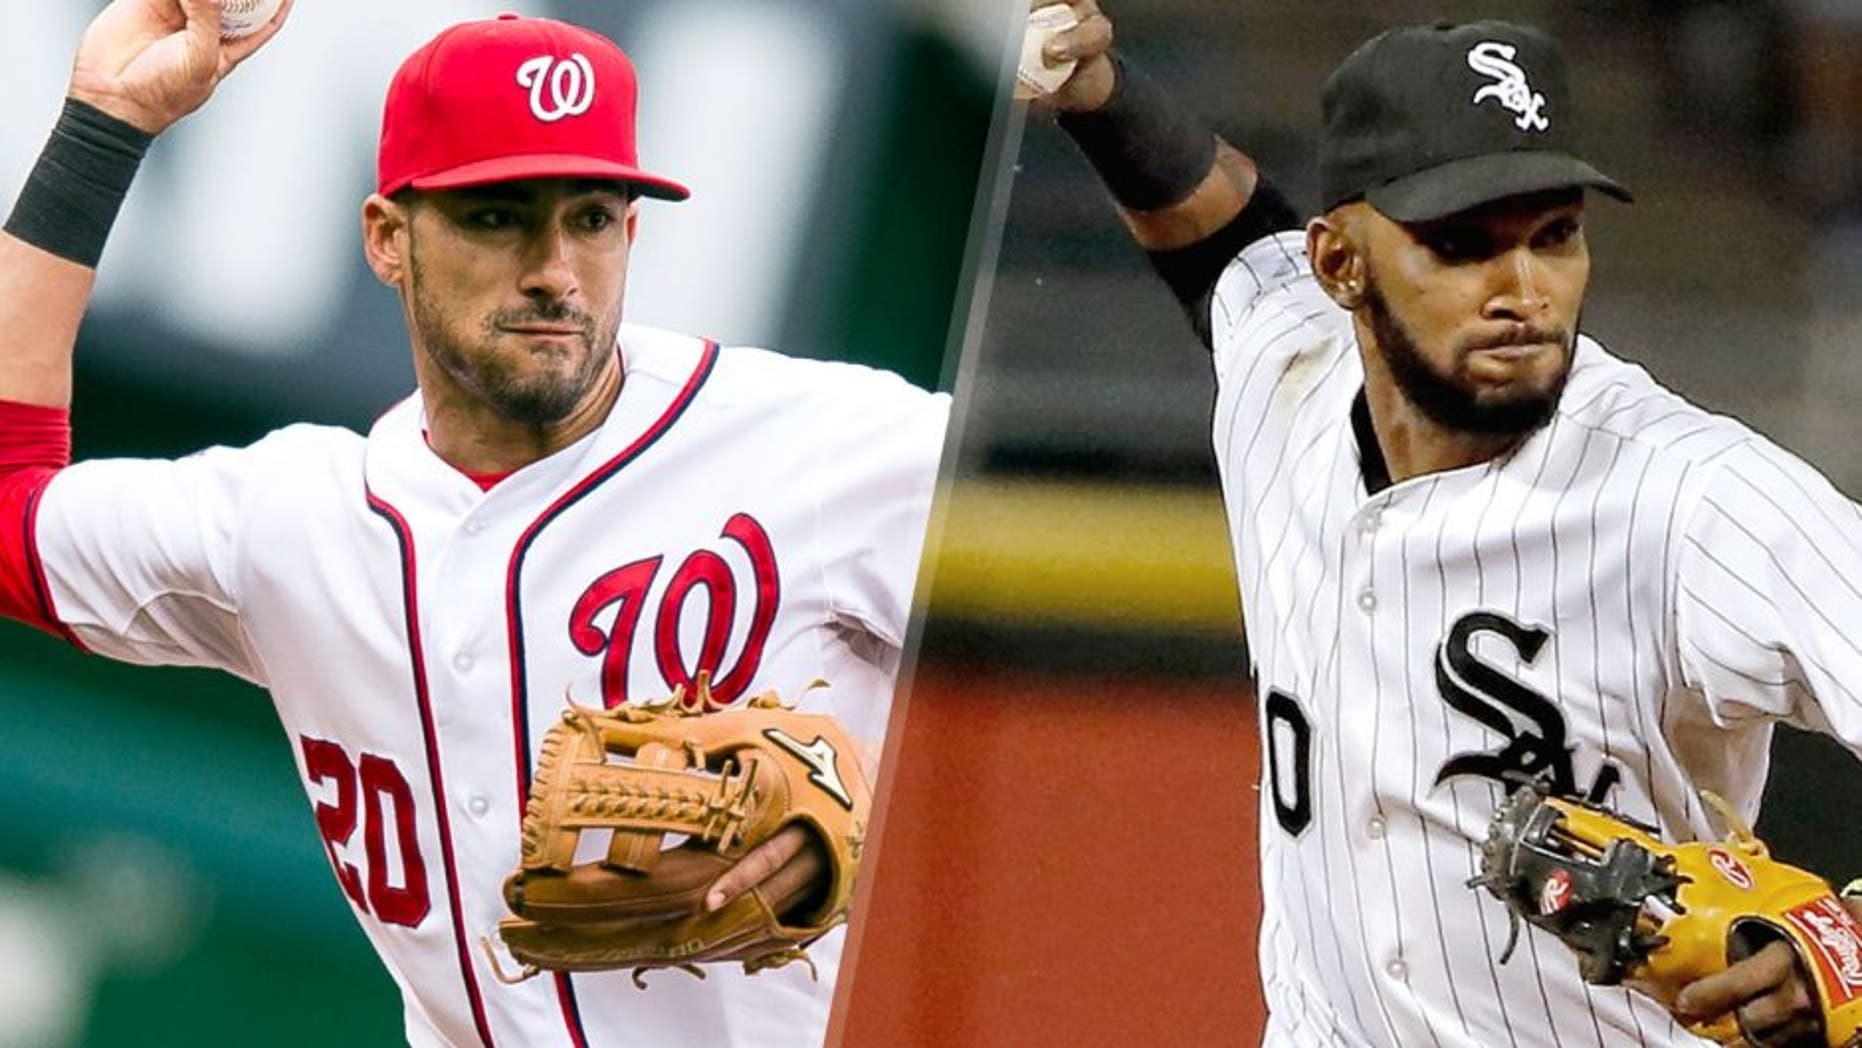 L - WASHINGTON, DC - SEPTEMBER 27: Ian Desmond #20 of the Washington Nationals makes a throw during a game against the Philadelphia Phillies at Nationals Park on September 27, 2015 in Washington, DC. (Photo by Patrick McDermott/Washington Nationals/Getty Images) R - CHICAGO, IL - SEPTEMBER 29: Alexei Ramirez #10 of the Chicago White Sox throws to first base for the out against the Kansas City Royals during the third inning at U.S. Cellular Field on September 29, 2015 in Chicago, Illinois. (Photo by Jon Durr/Getty Images)